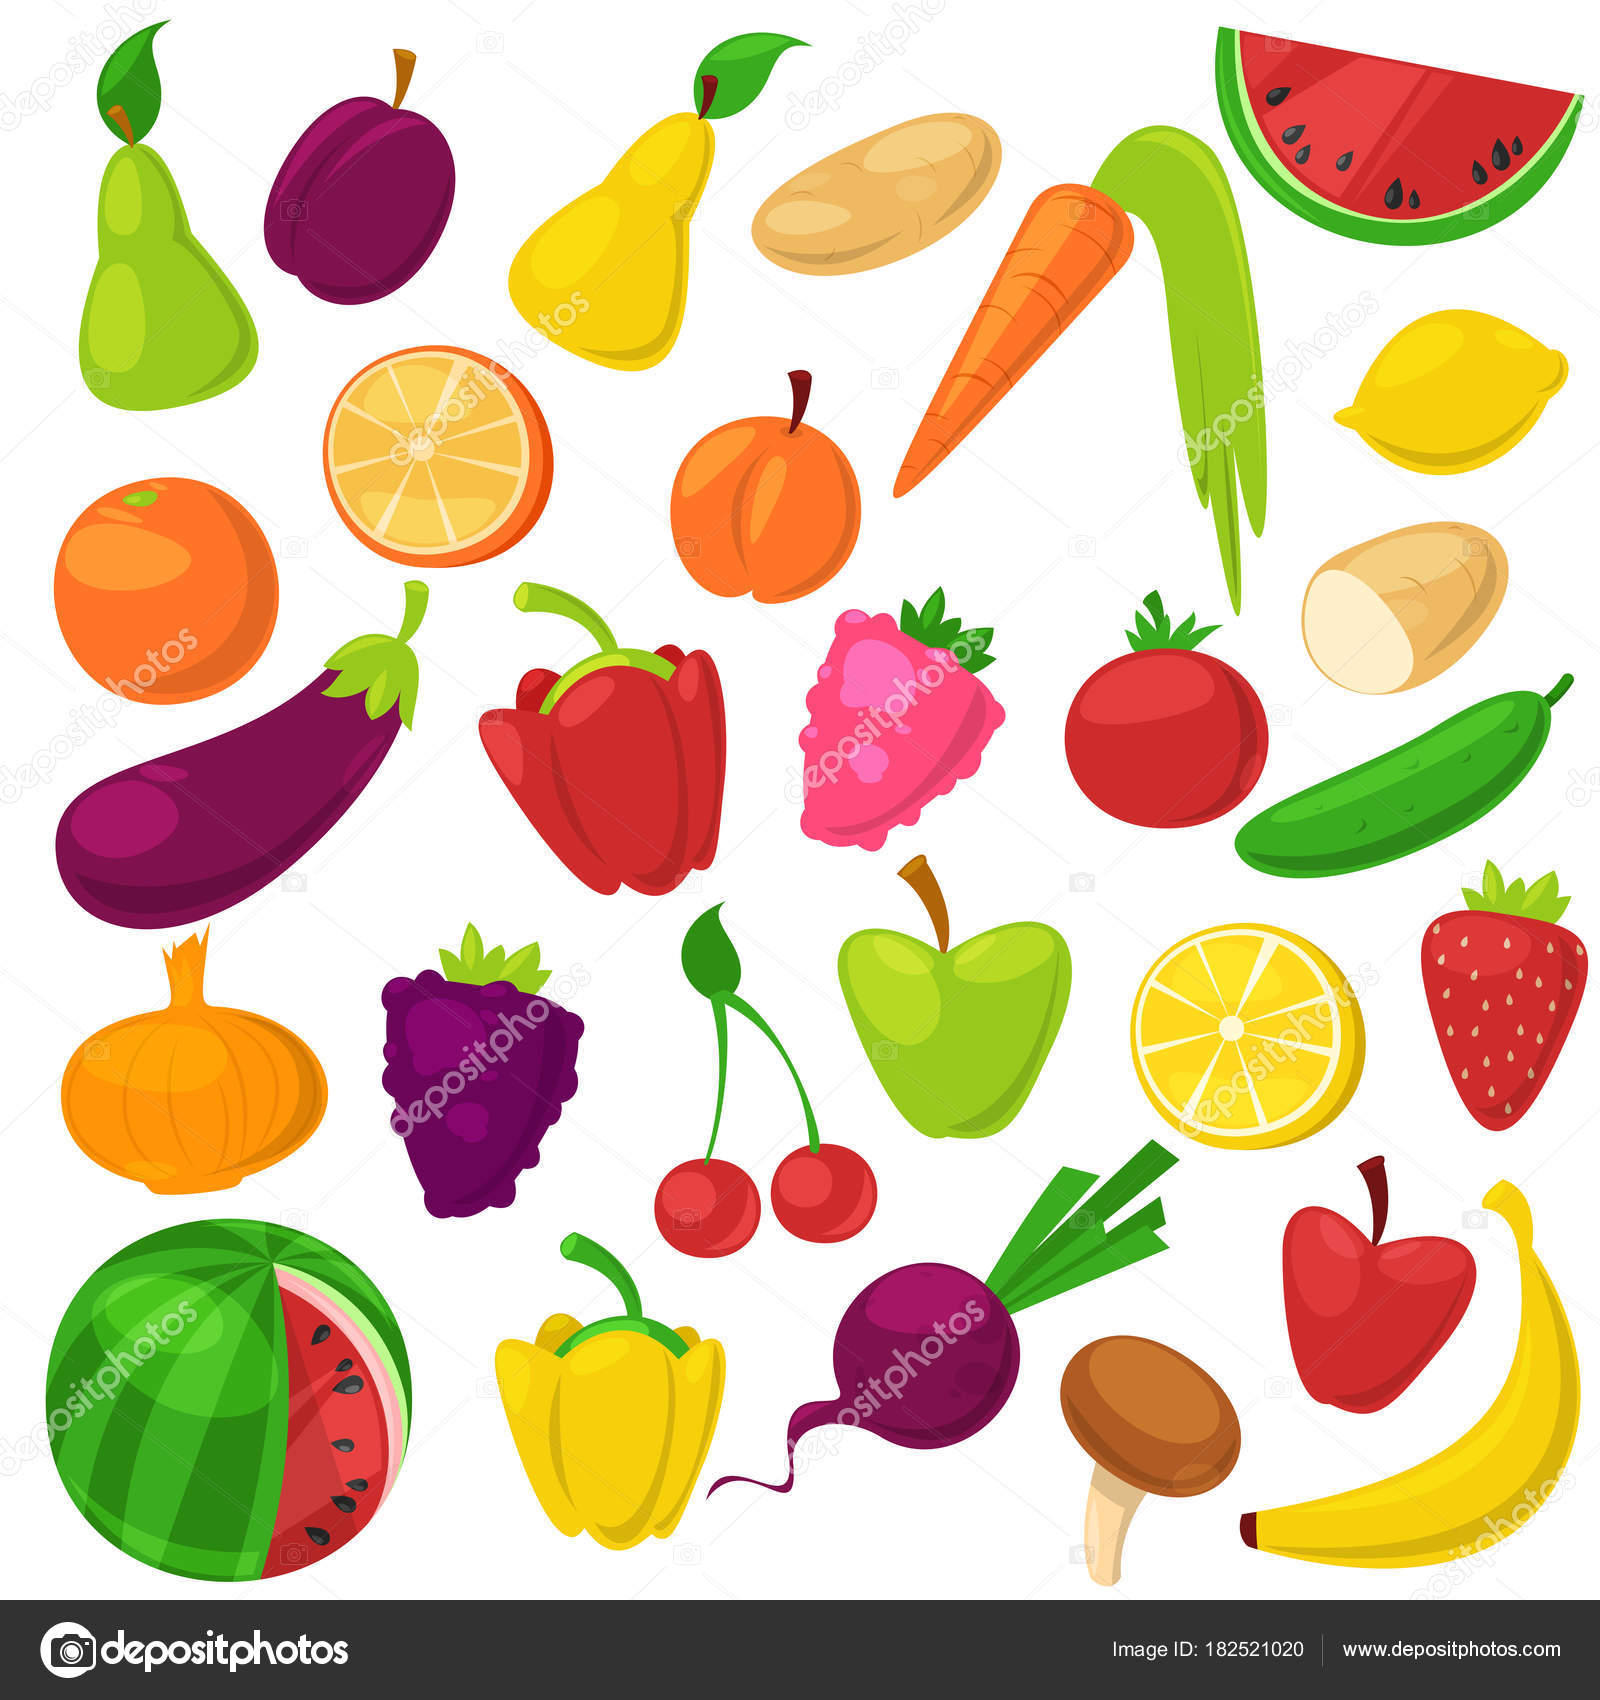 graphic freeuse Collection of free dieted. Nutrition clipart heathy food.